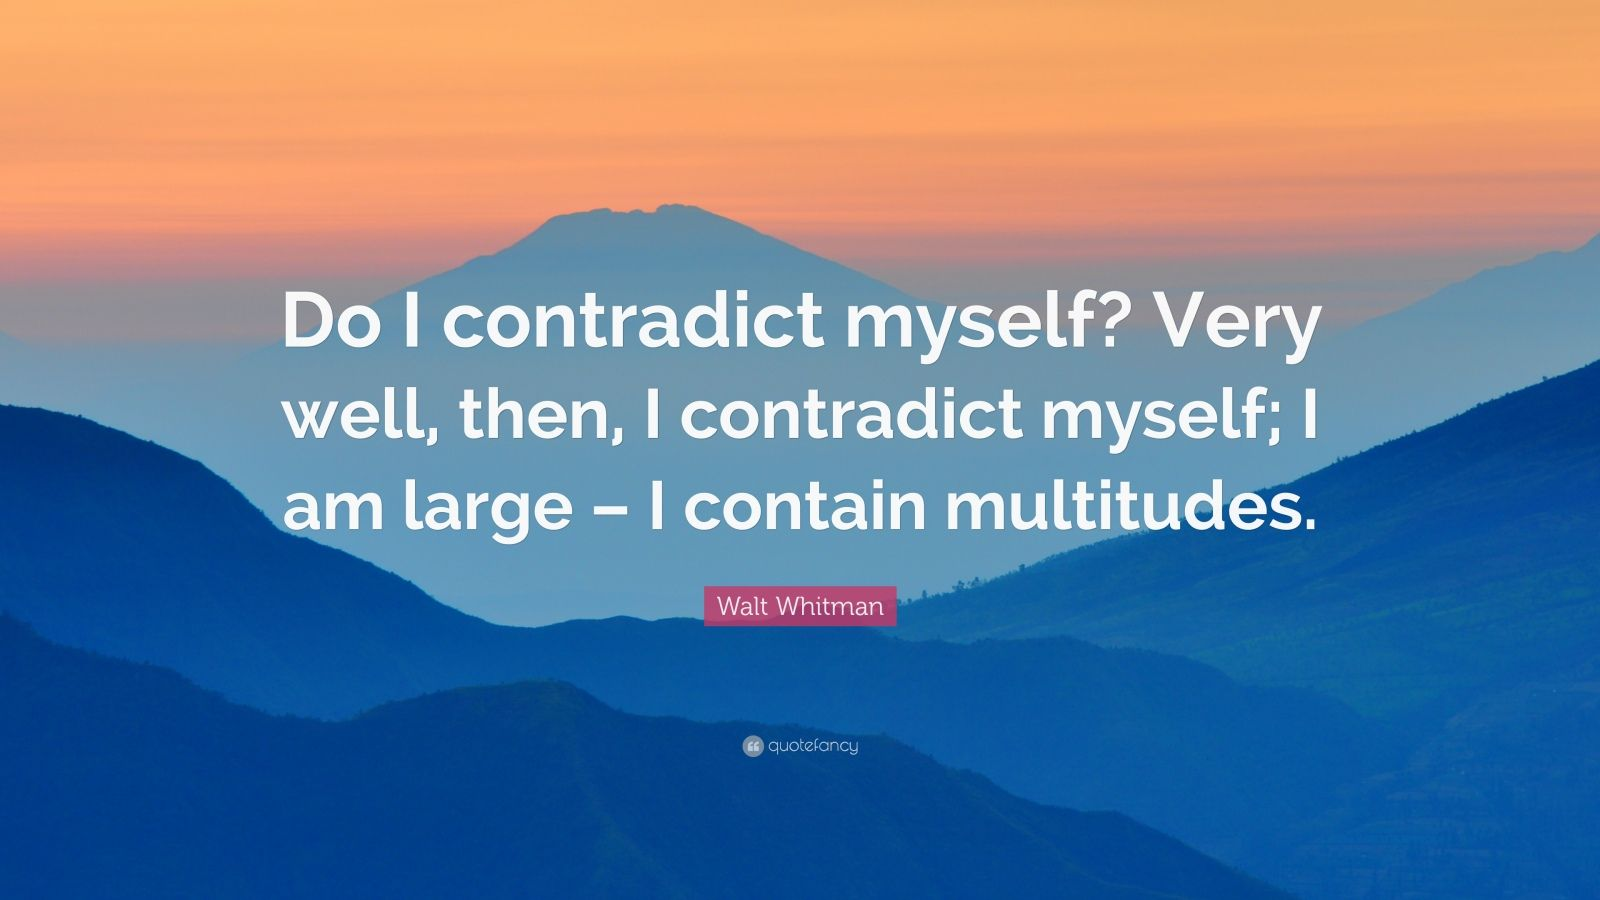 Mother Teresa Quotes Wallpapers Walt Whitman Quote Do I Contradict Myself Very Well